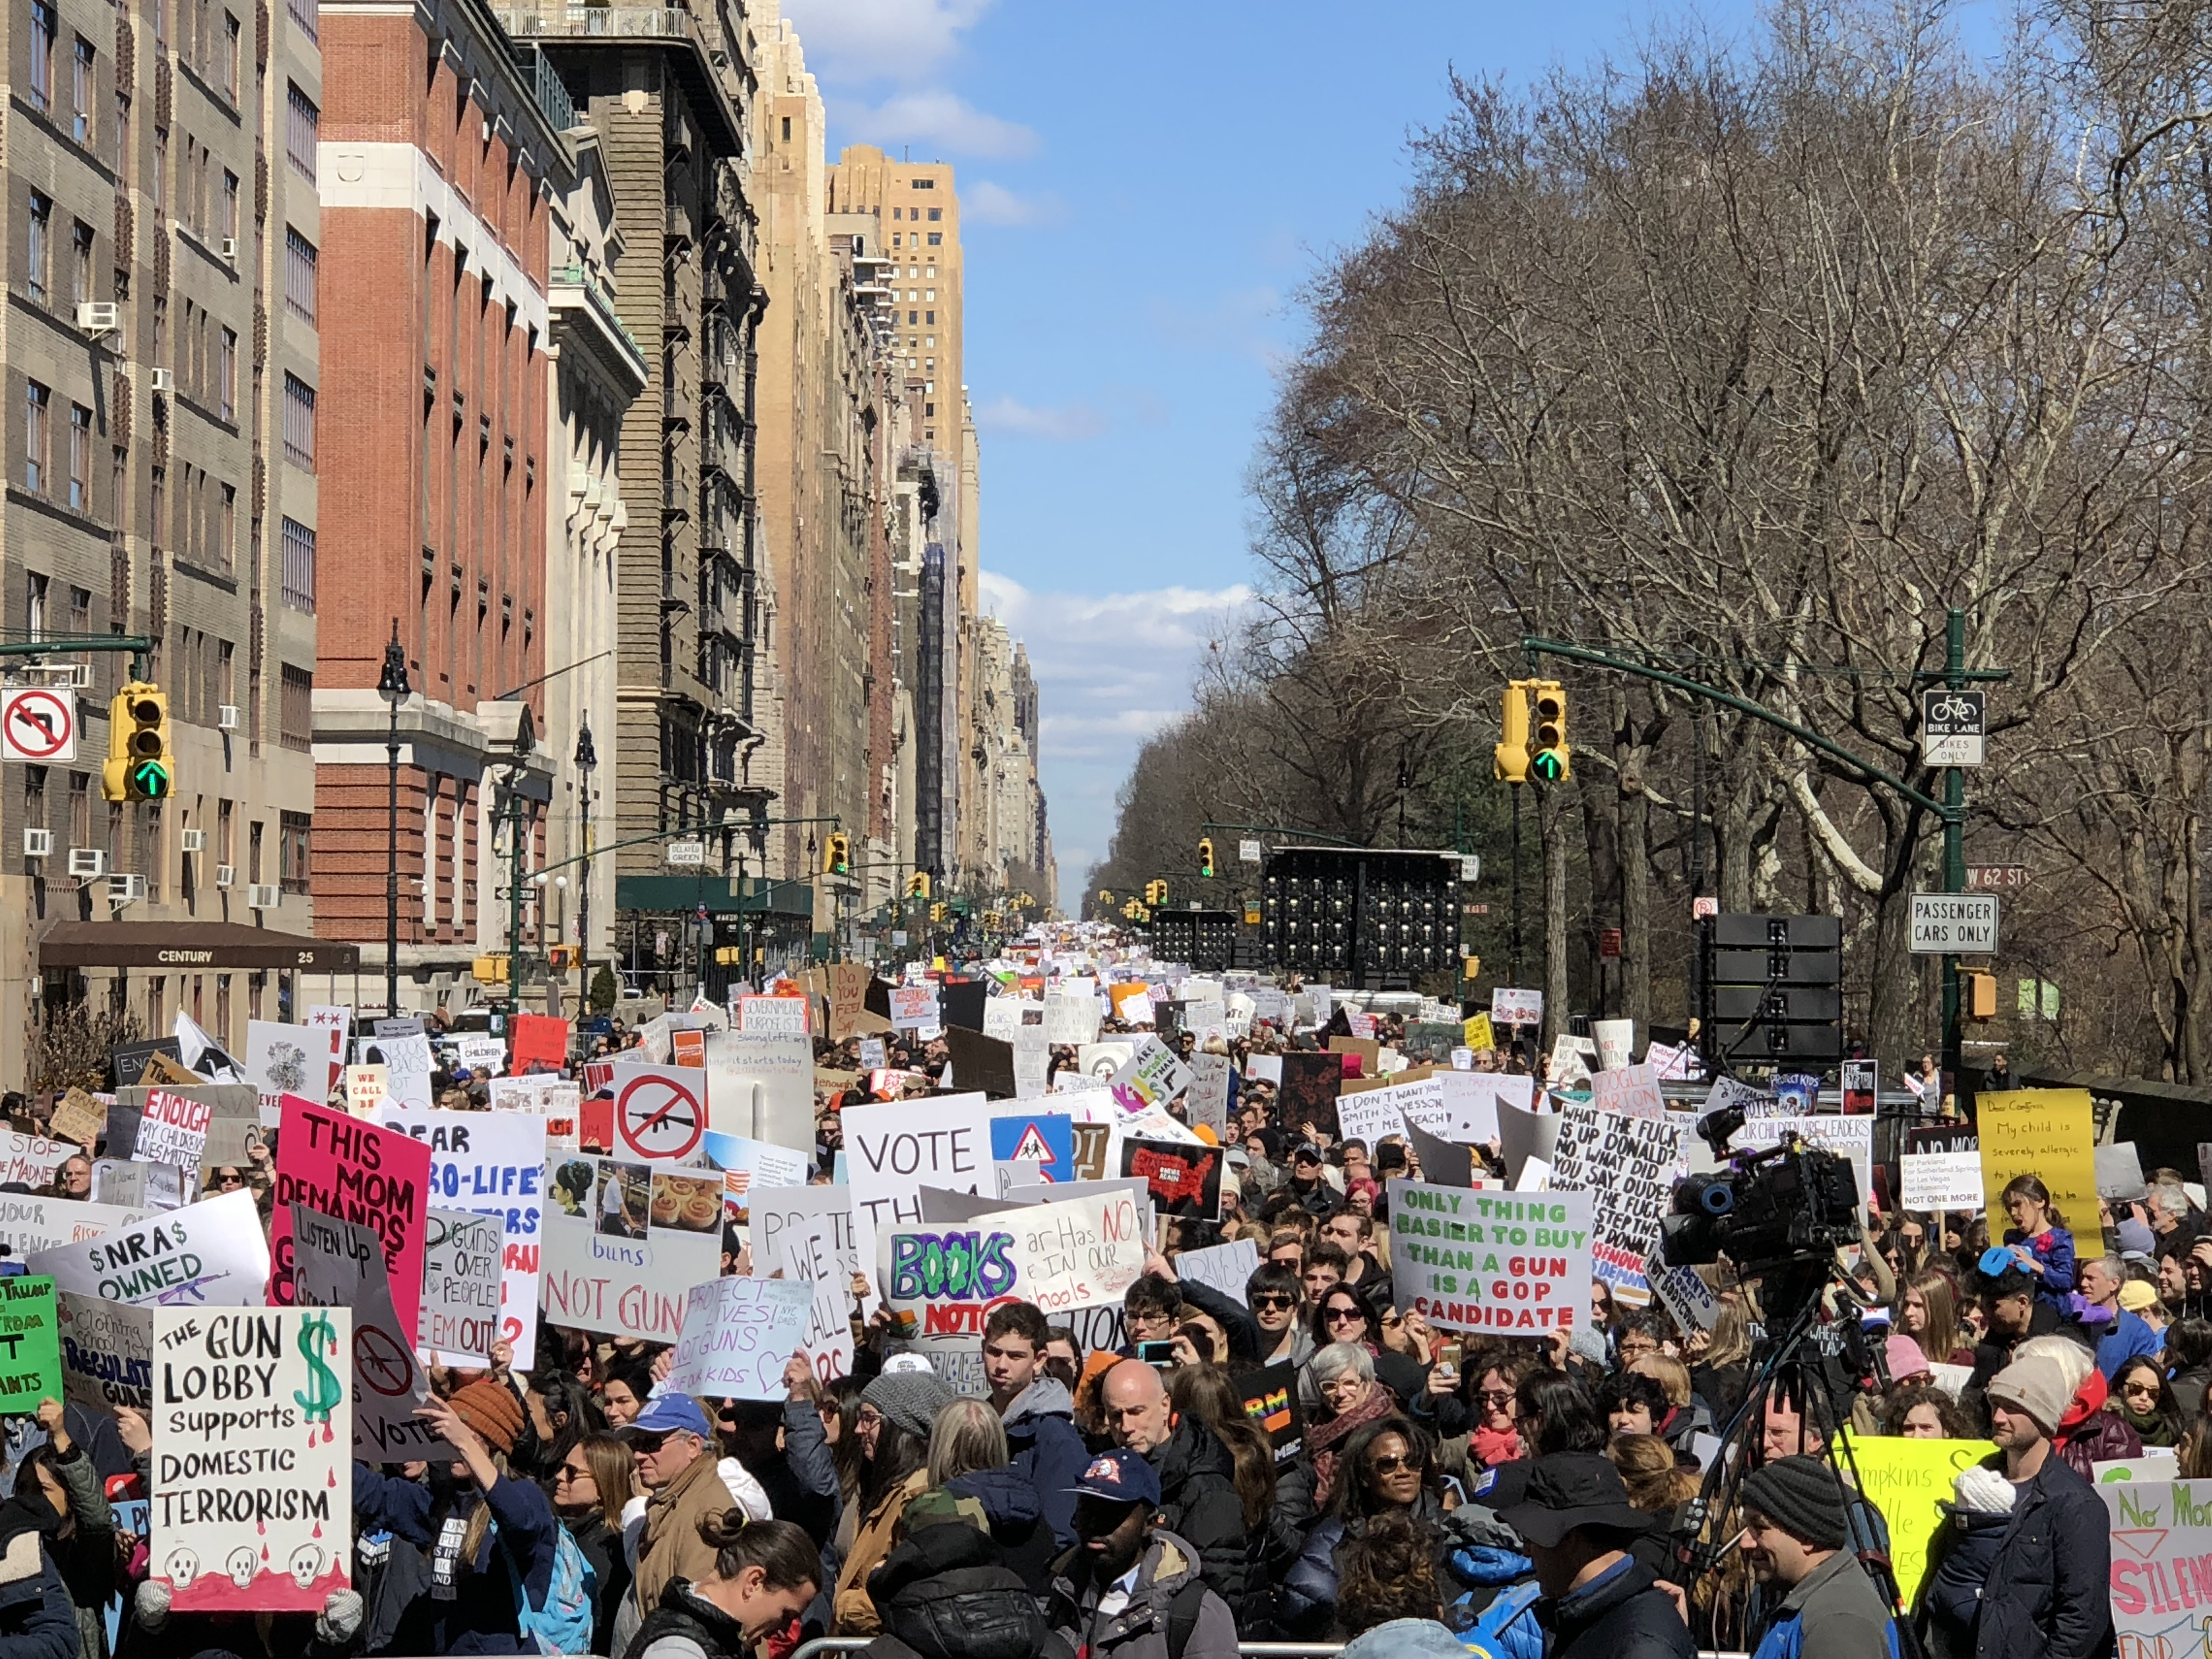 NYC March for our Lives